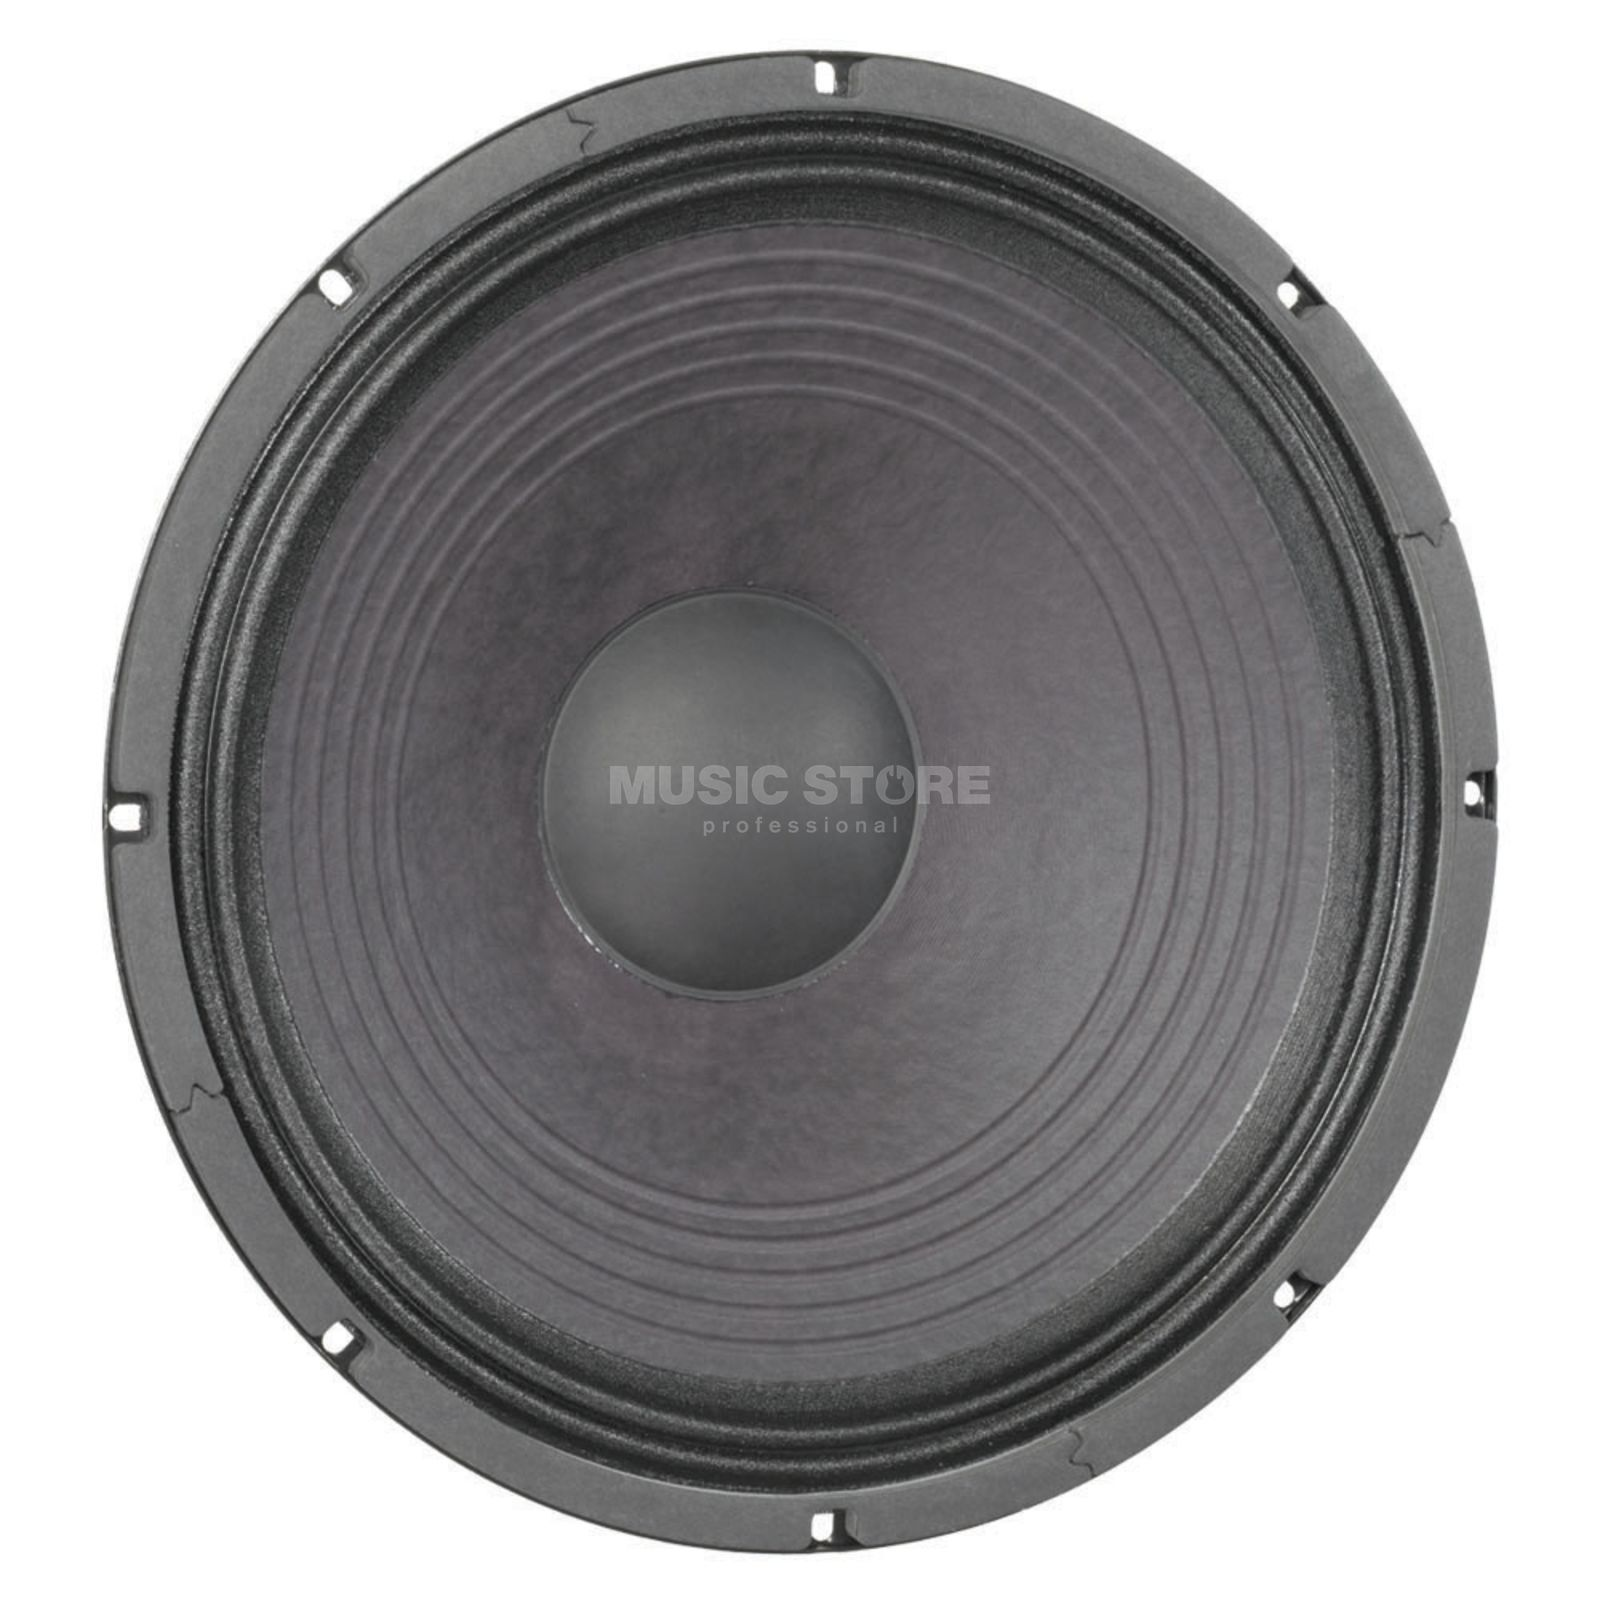 "Eminence Delta 15LFA, 15"" Speaker 500Watt/8Ohm, 42Hz - 3.2kHz Product Image"